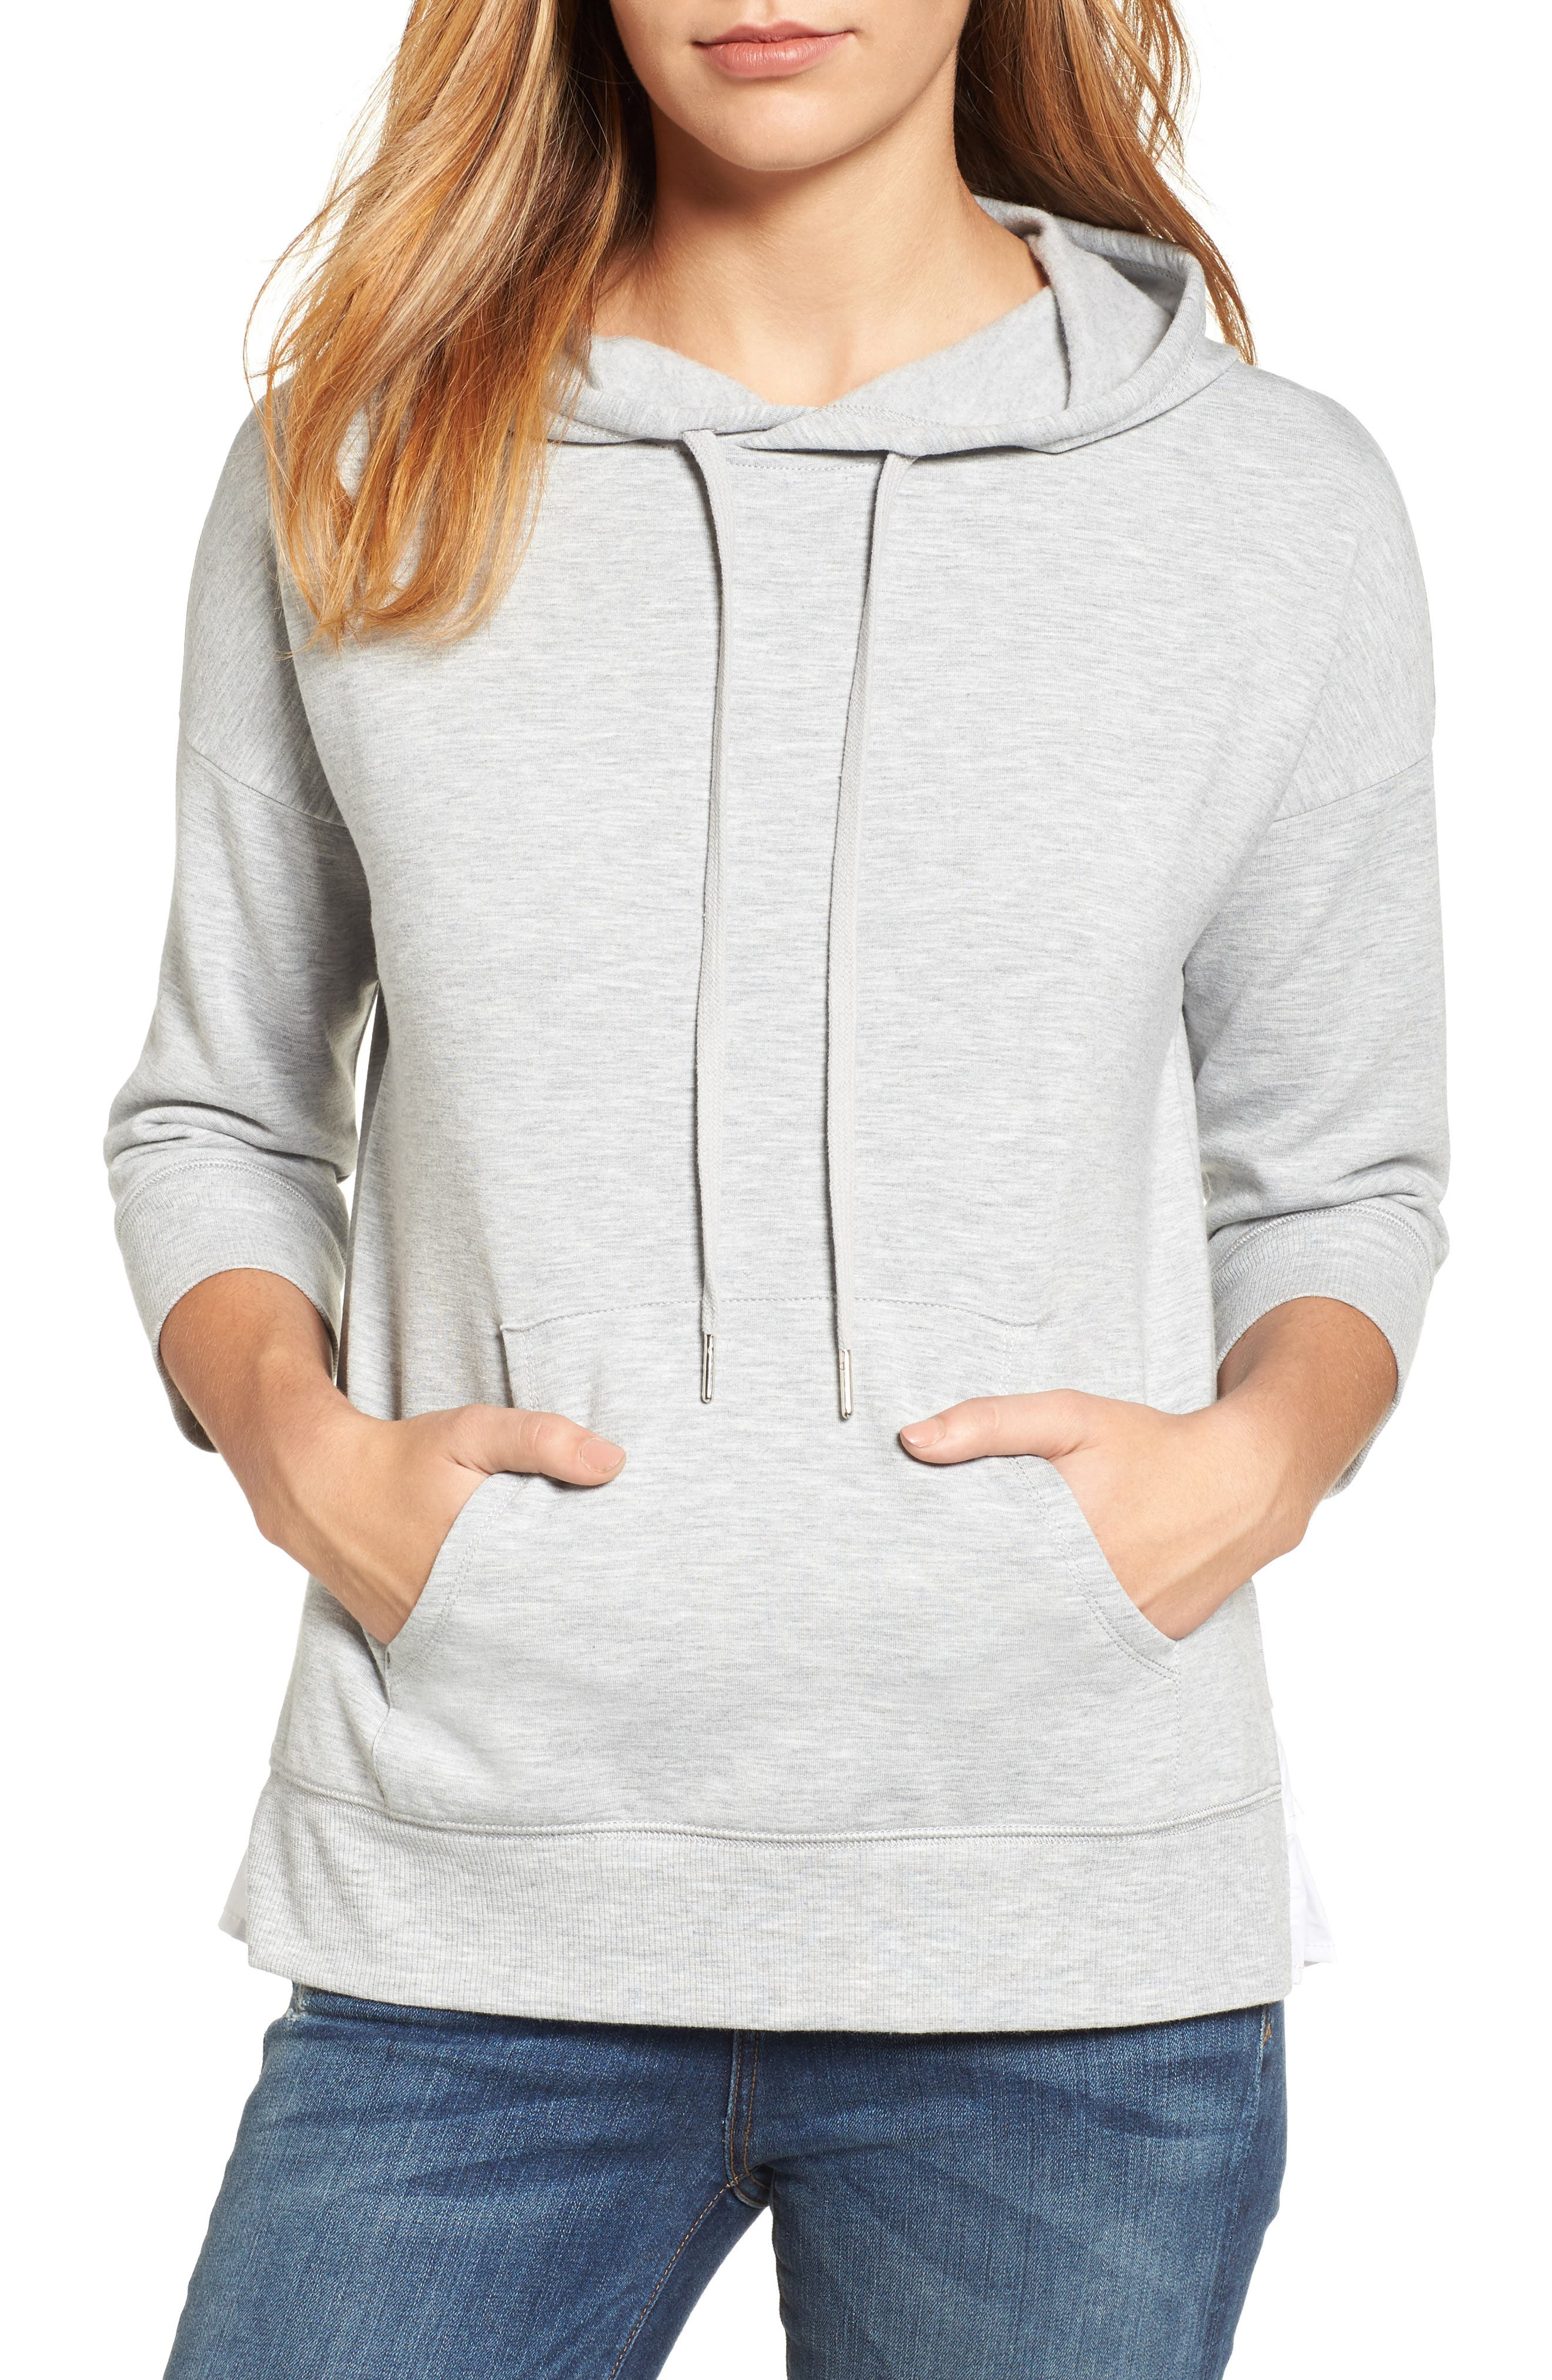 Woven Inset Knit Hoodie,                             Main thumbnail 1, color,                             Heather Grey